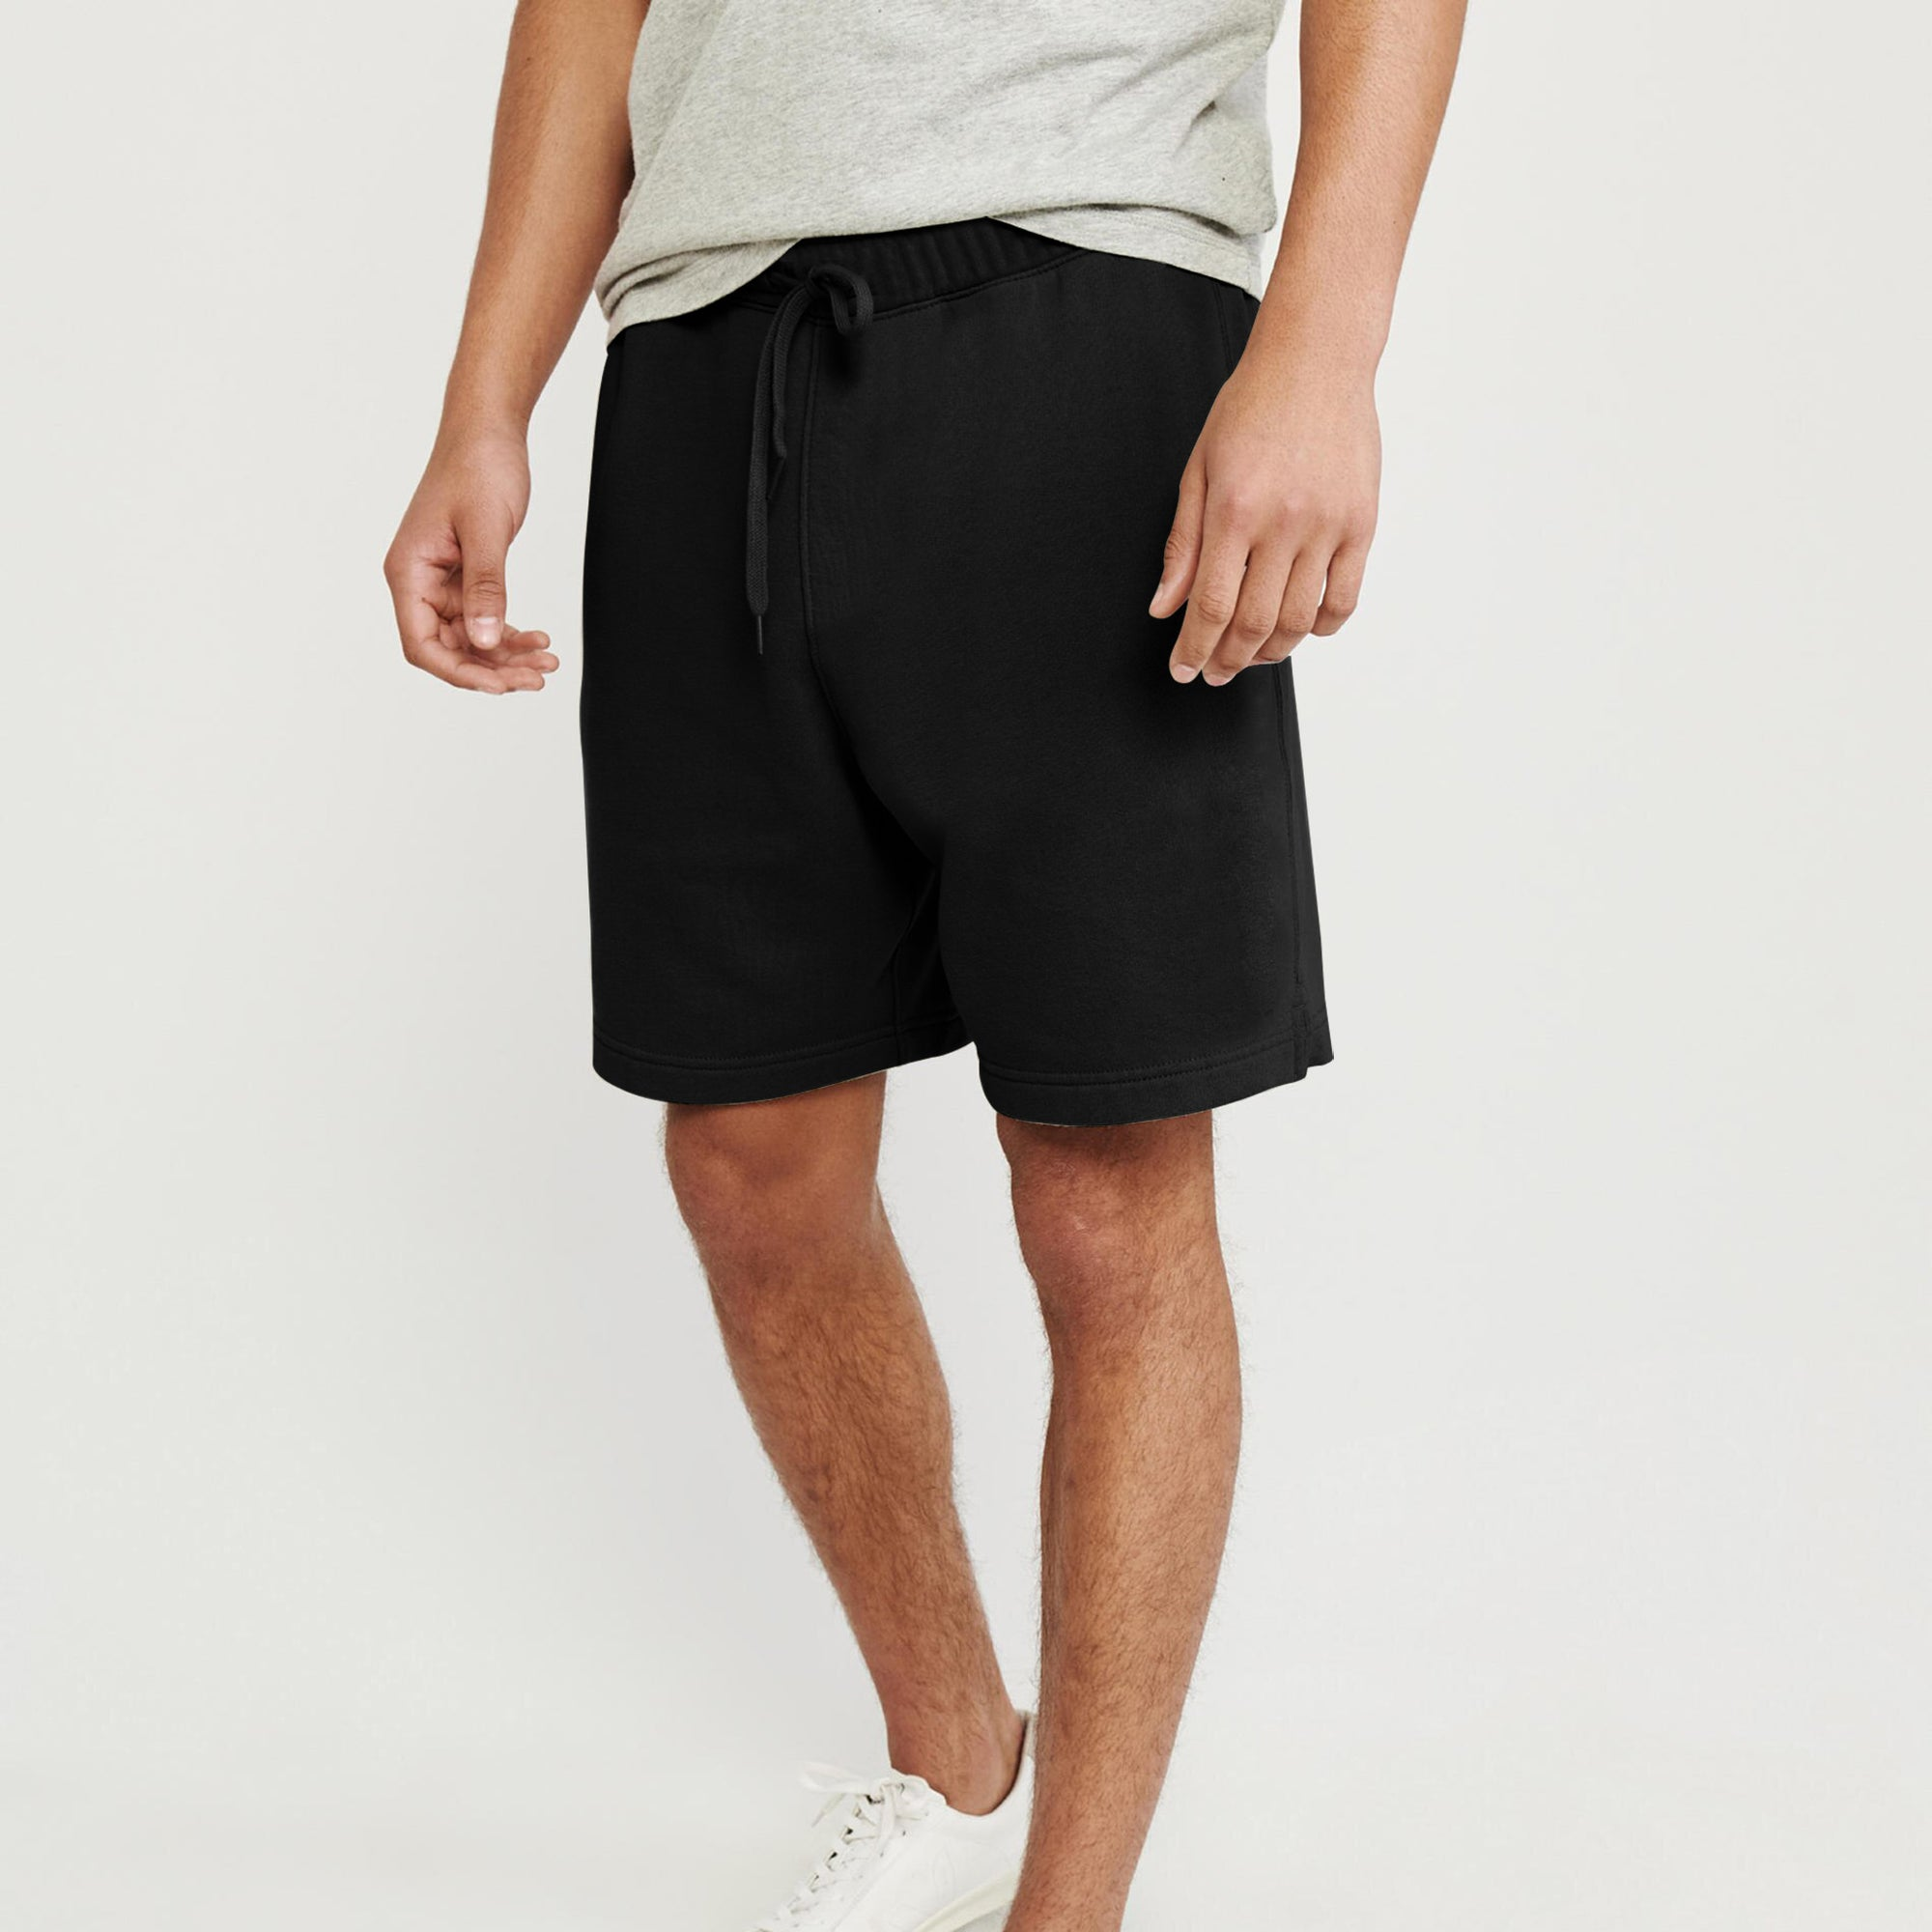 Next Summer P.Q Short For Men-Black-BE8830